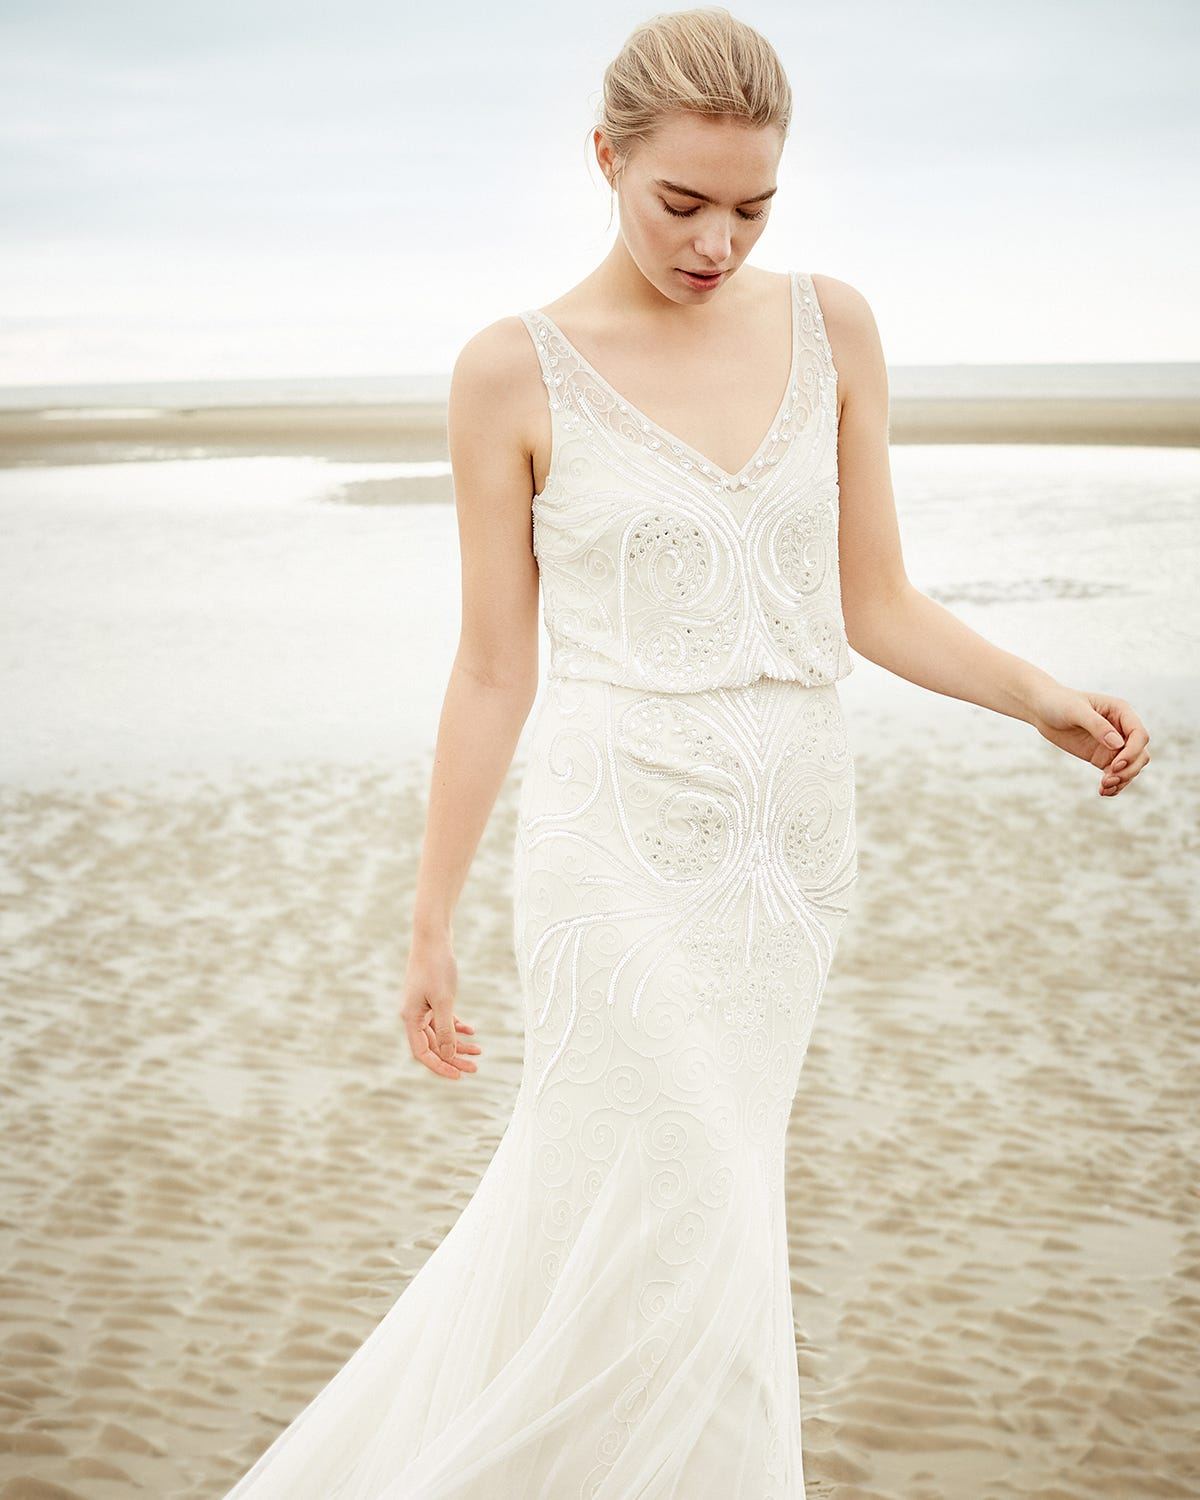 Where To Find The Best Secondhand Wedding Dresses,Where To Buy Wedding Dresses Online